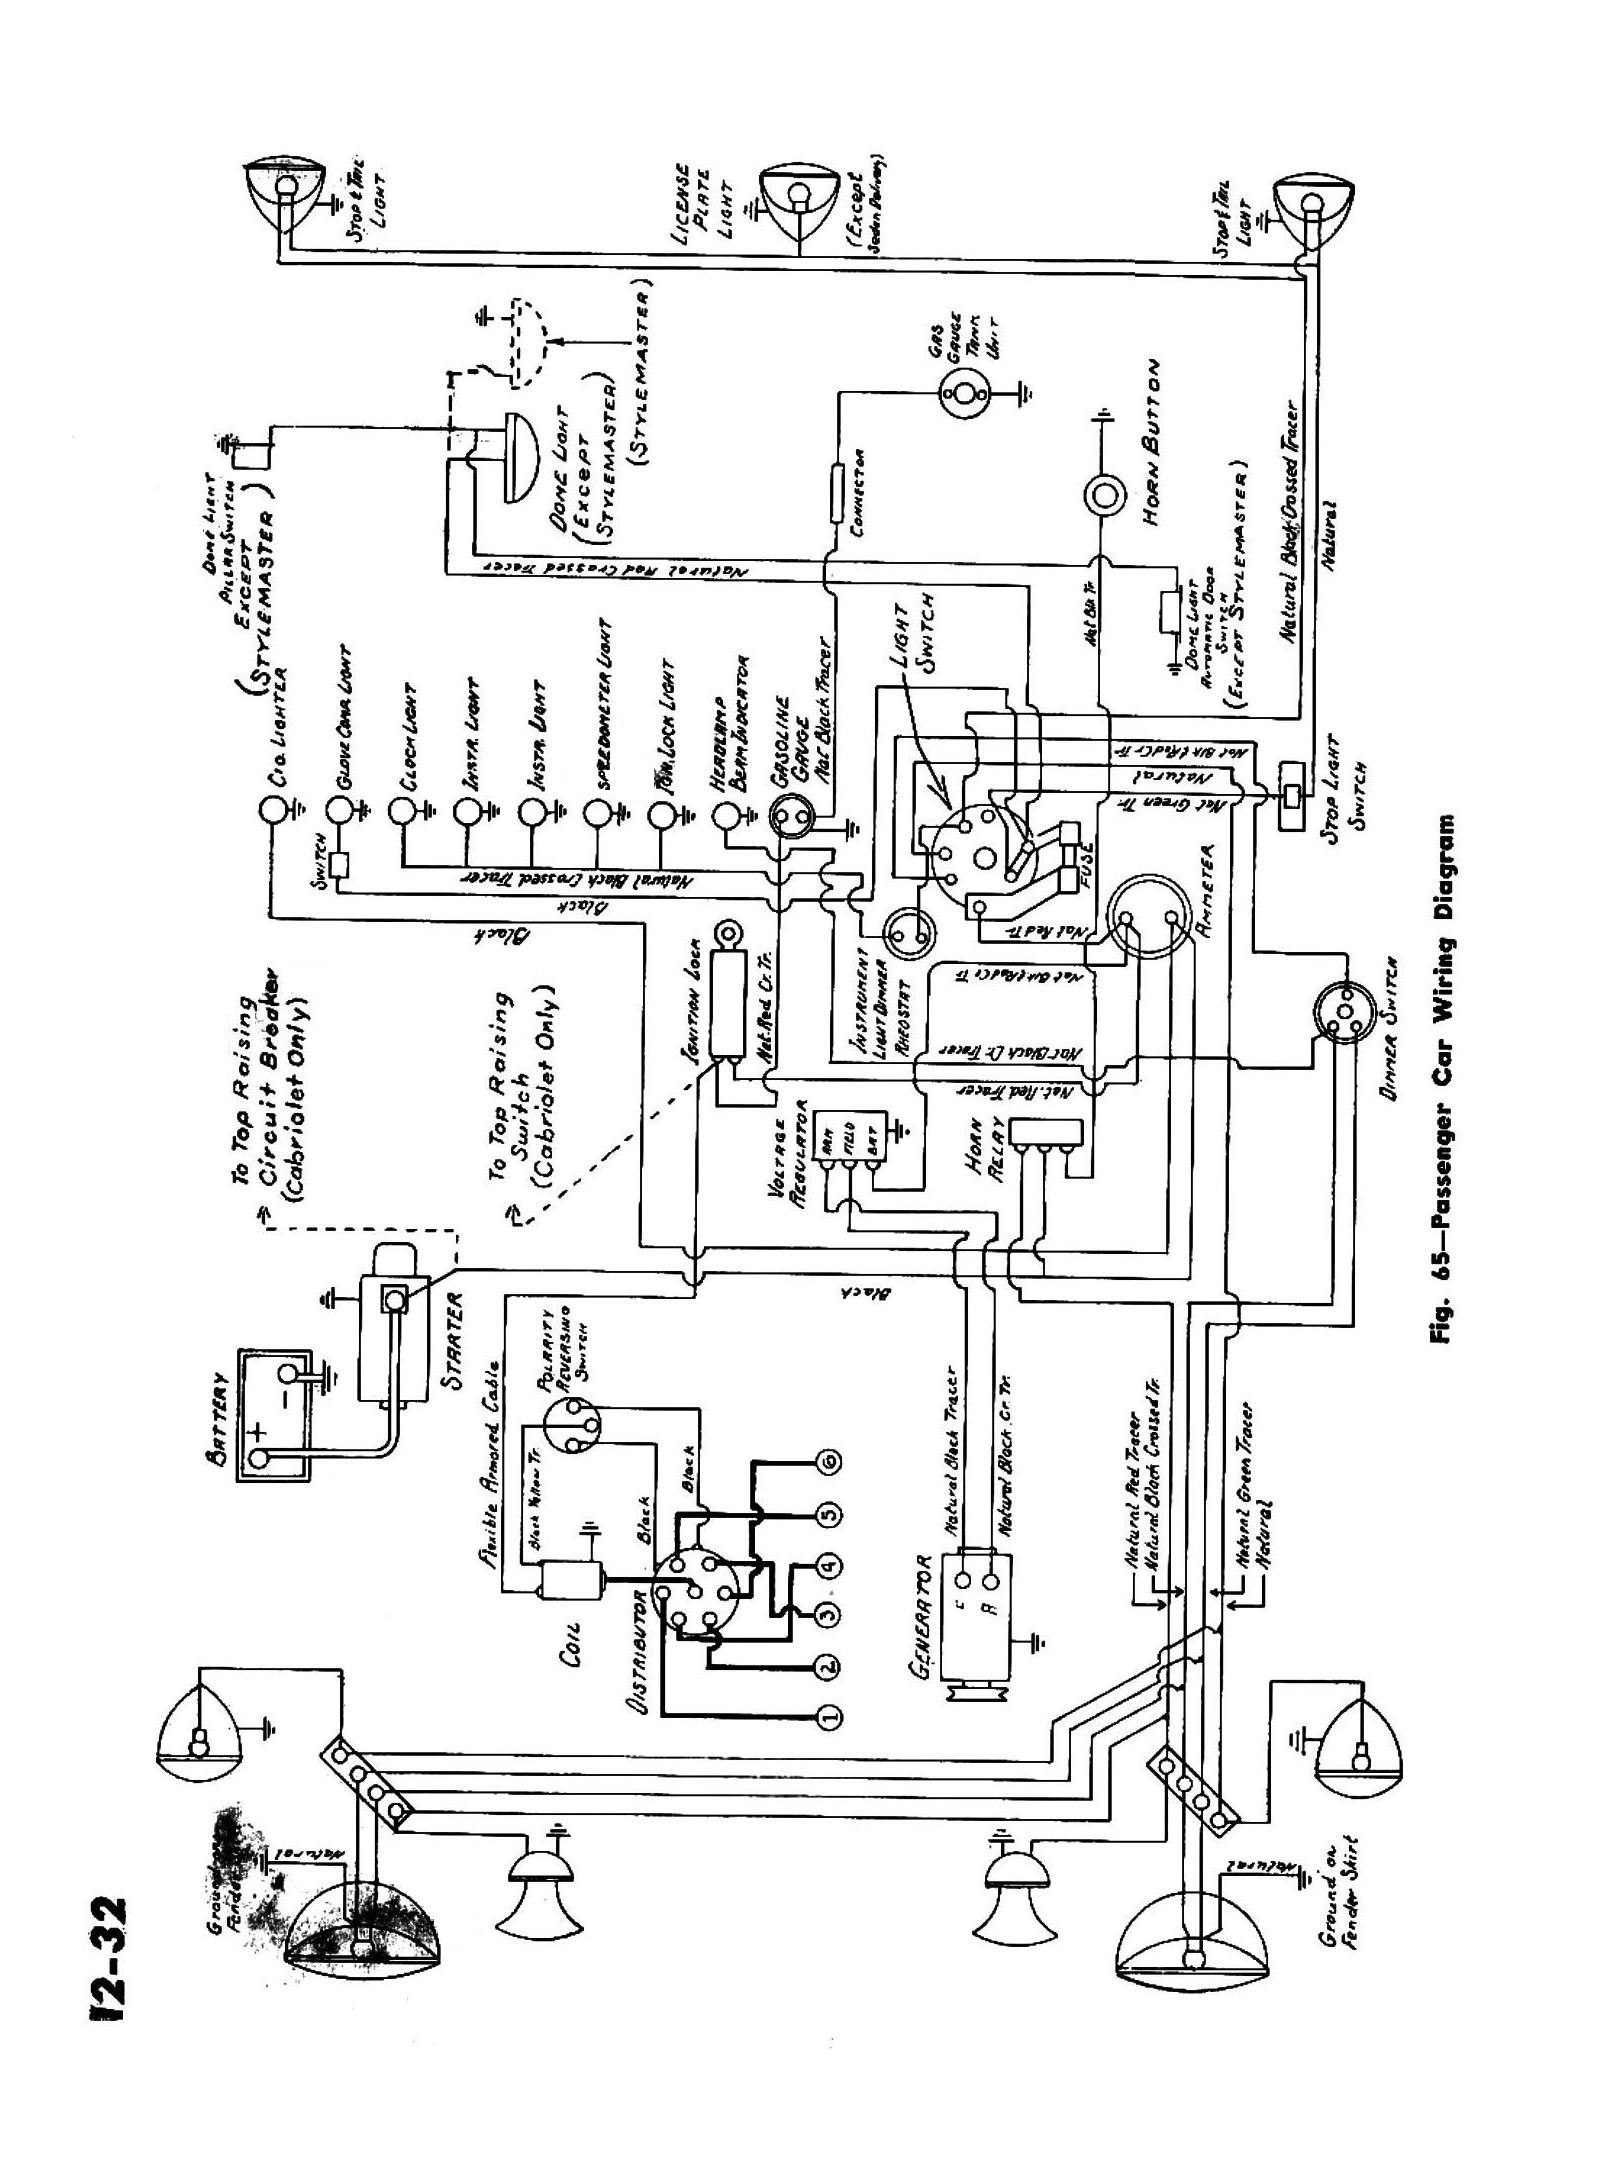 45car latest auto electrical wiring diagram manual jpg hd wallpaper hd wiring diagrams online at gsmportal.co